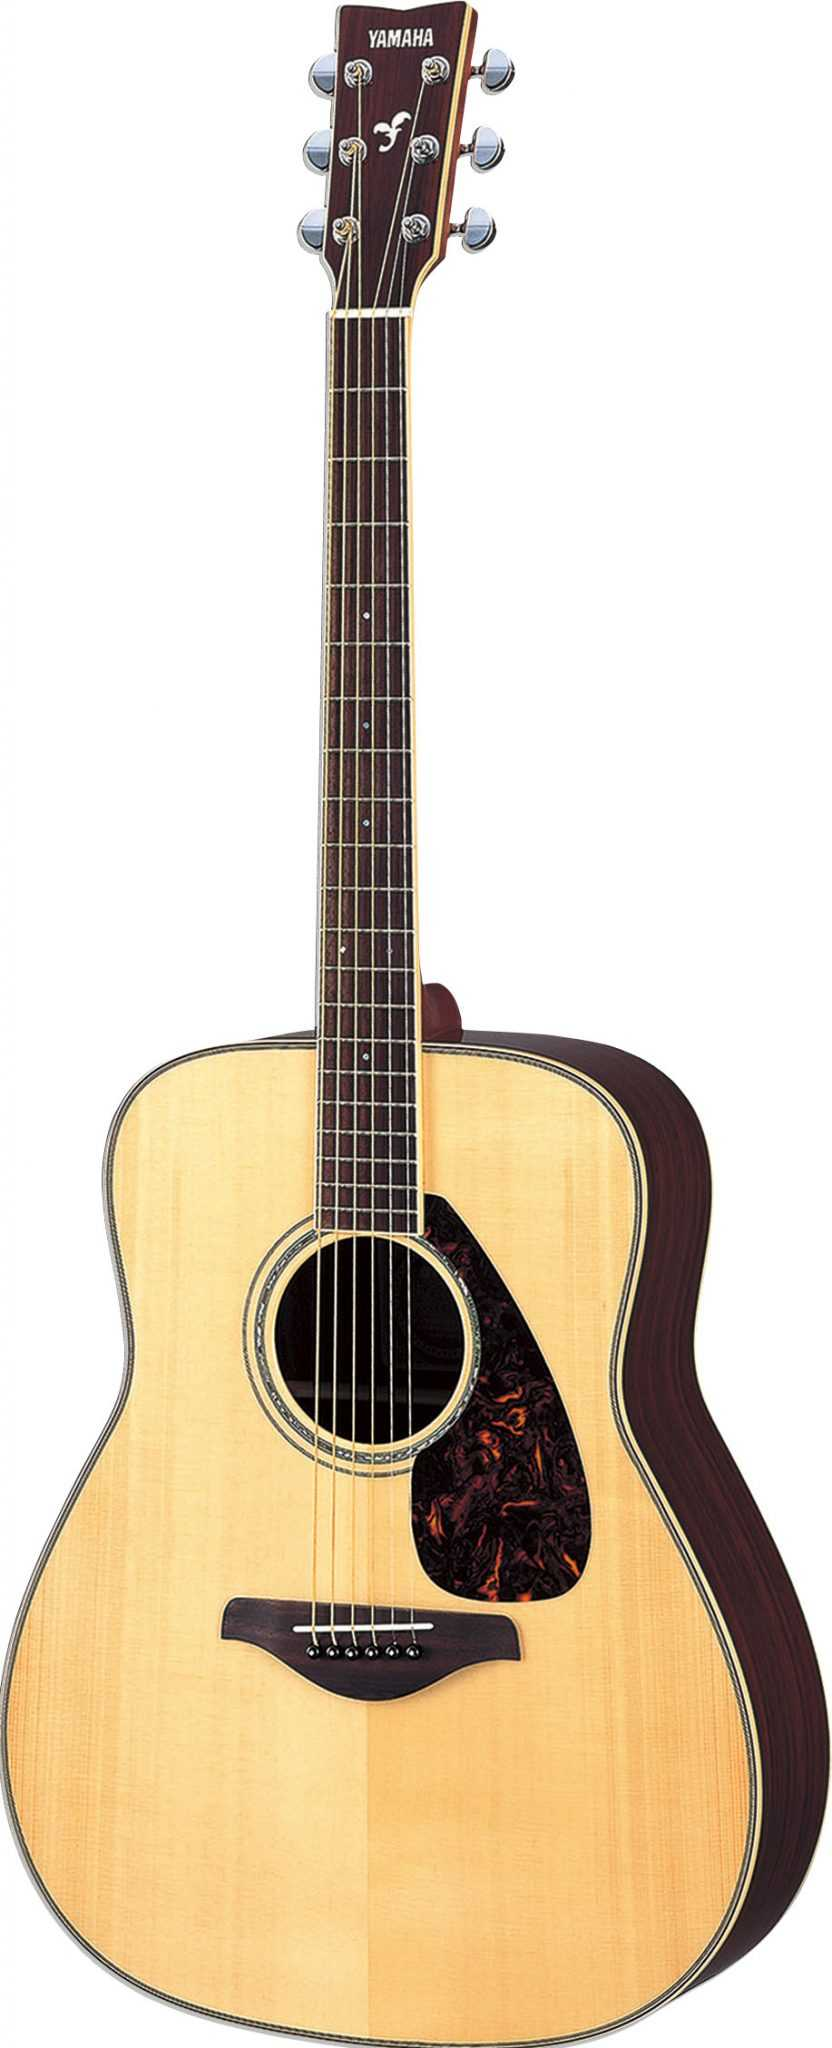 6 best camping guitars under 300 middle 8 reviews for Where are yamaha guitars made